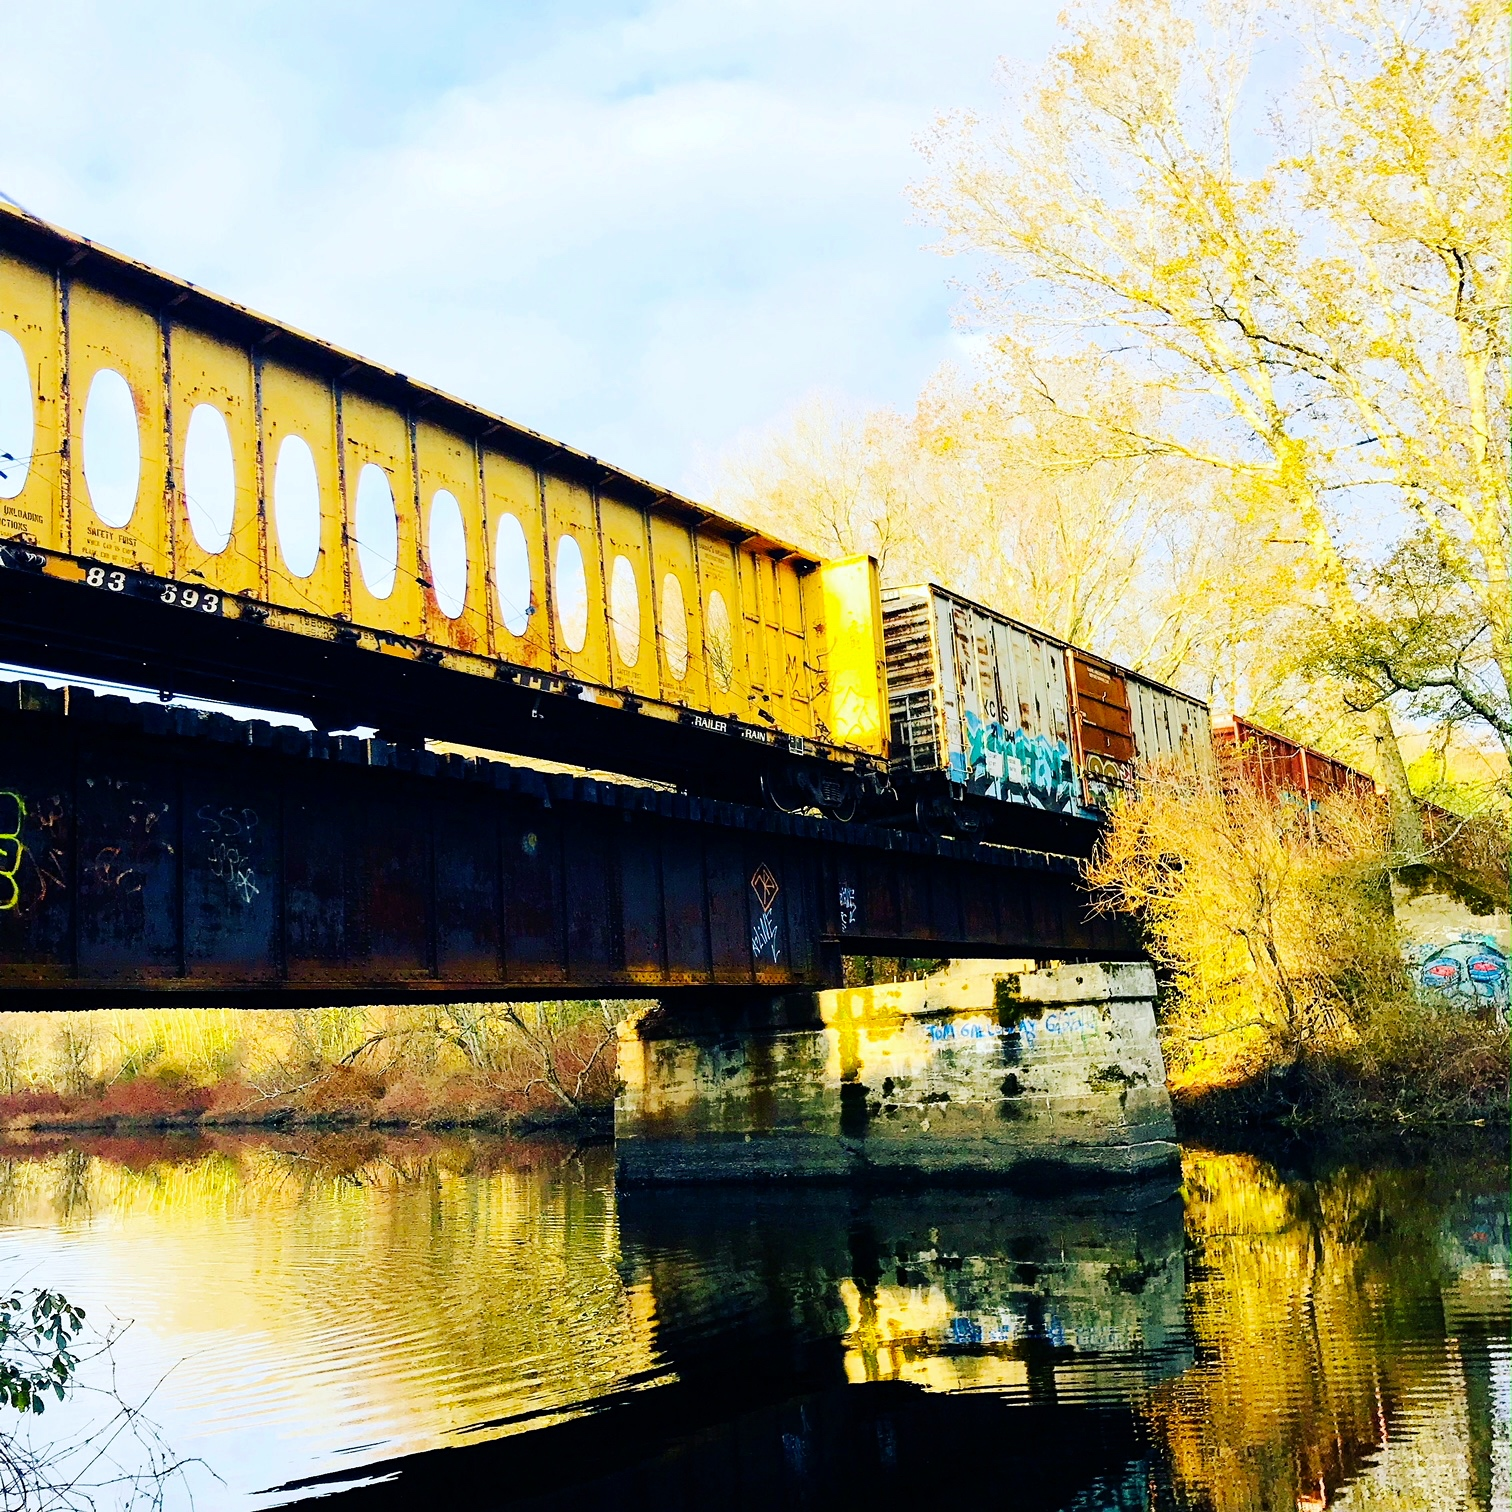 Morning train over trestle bridge, Charles River